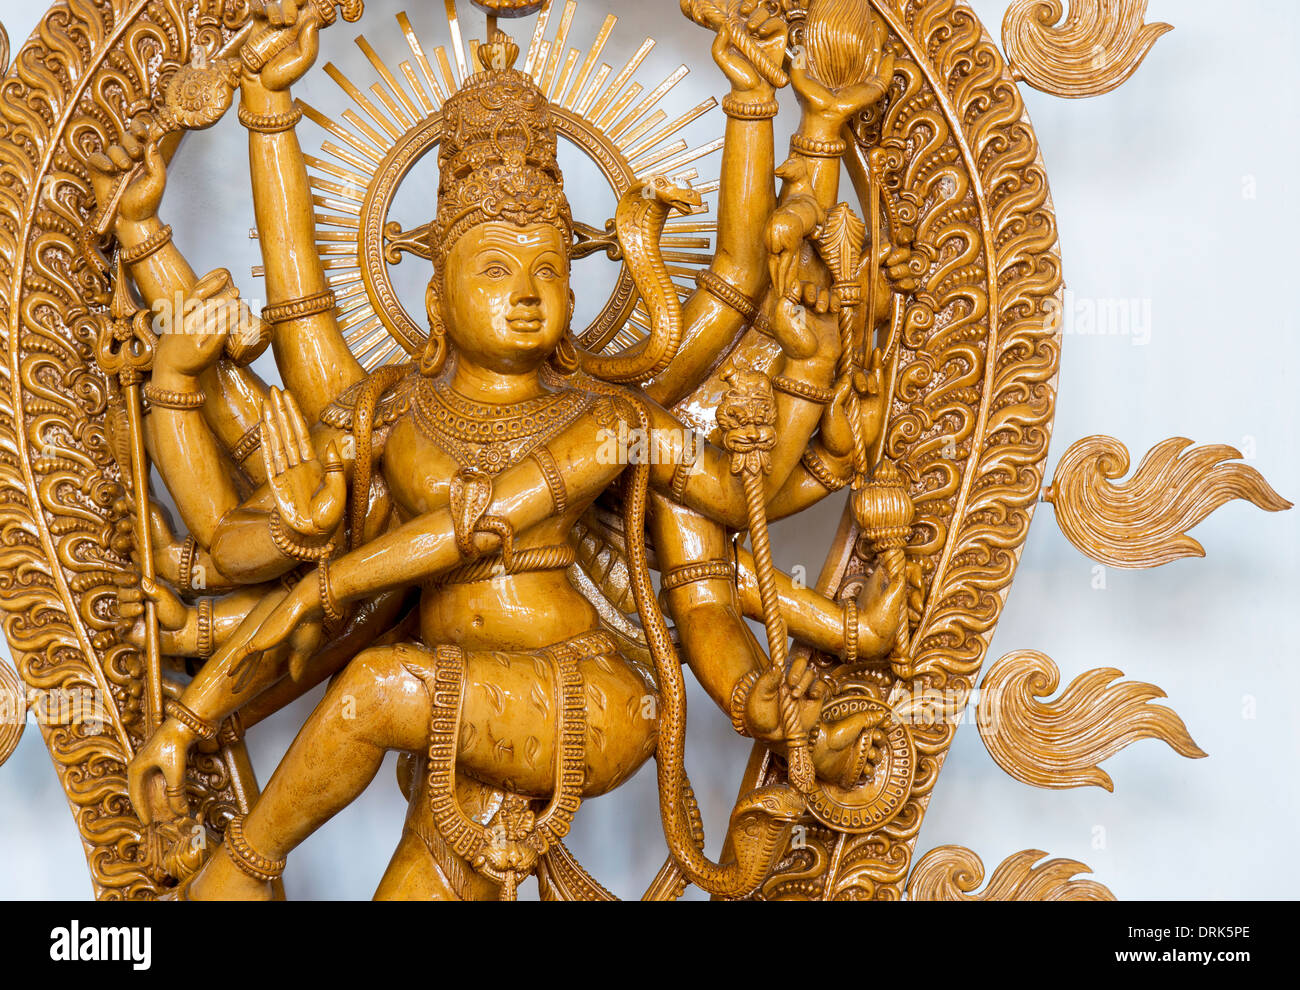 Good Wallpaper Lord Nataraja - sandalwood-dancing-lord-shiva-statue-nataraja-hindu-god-against-white-DRK5PE  Gallery_145149.jpg